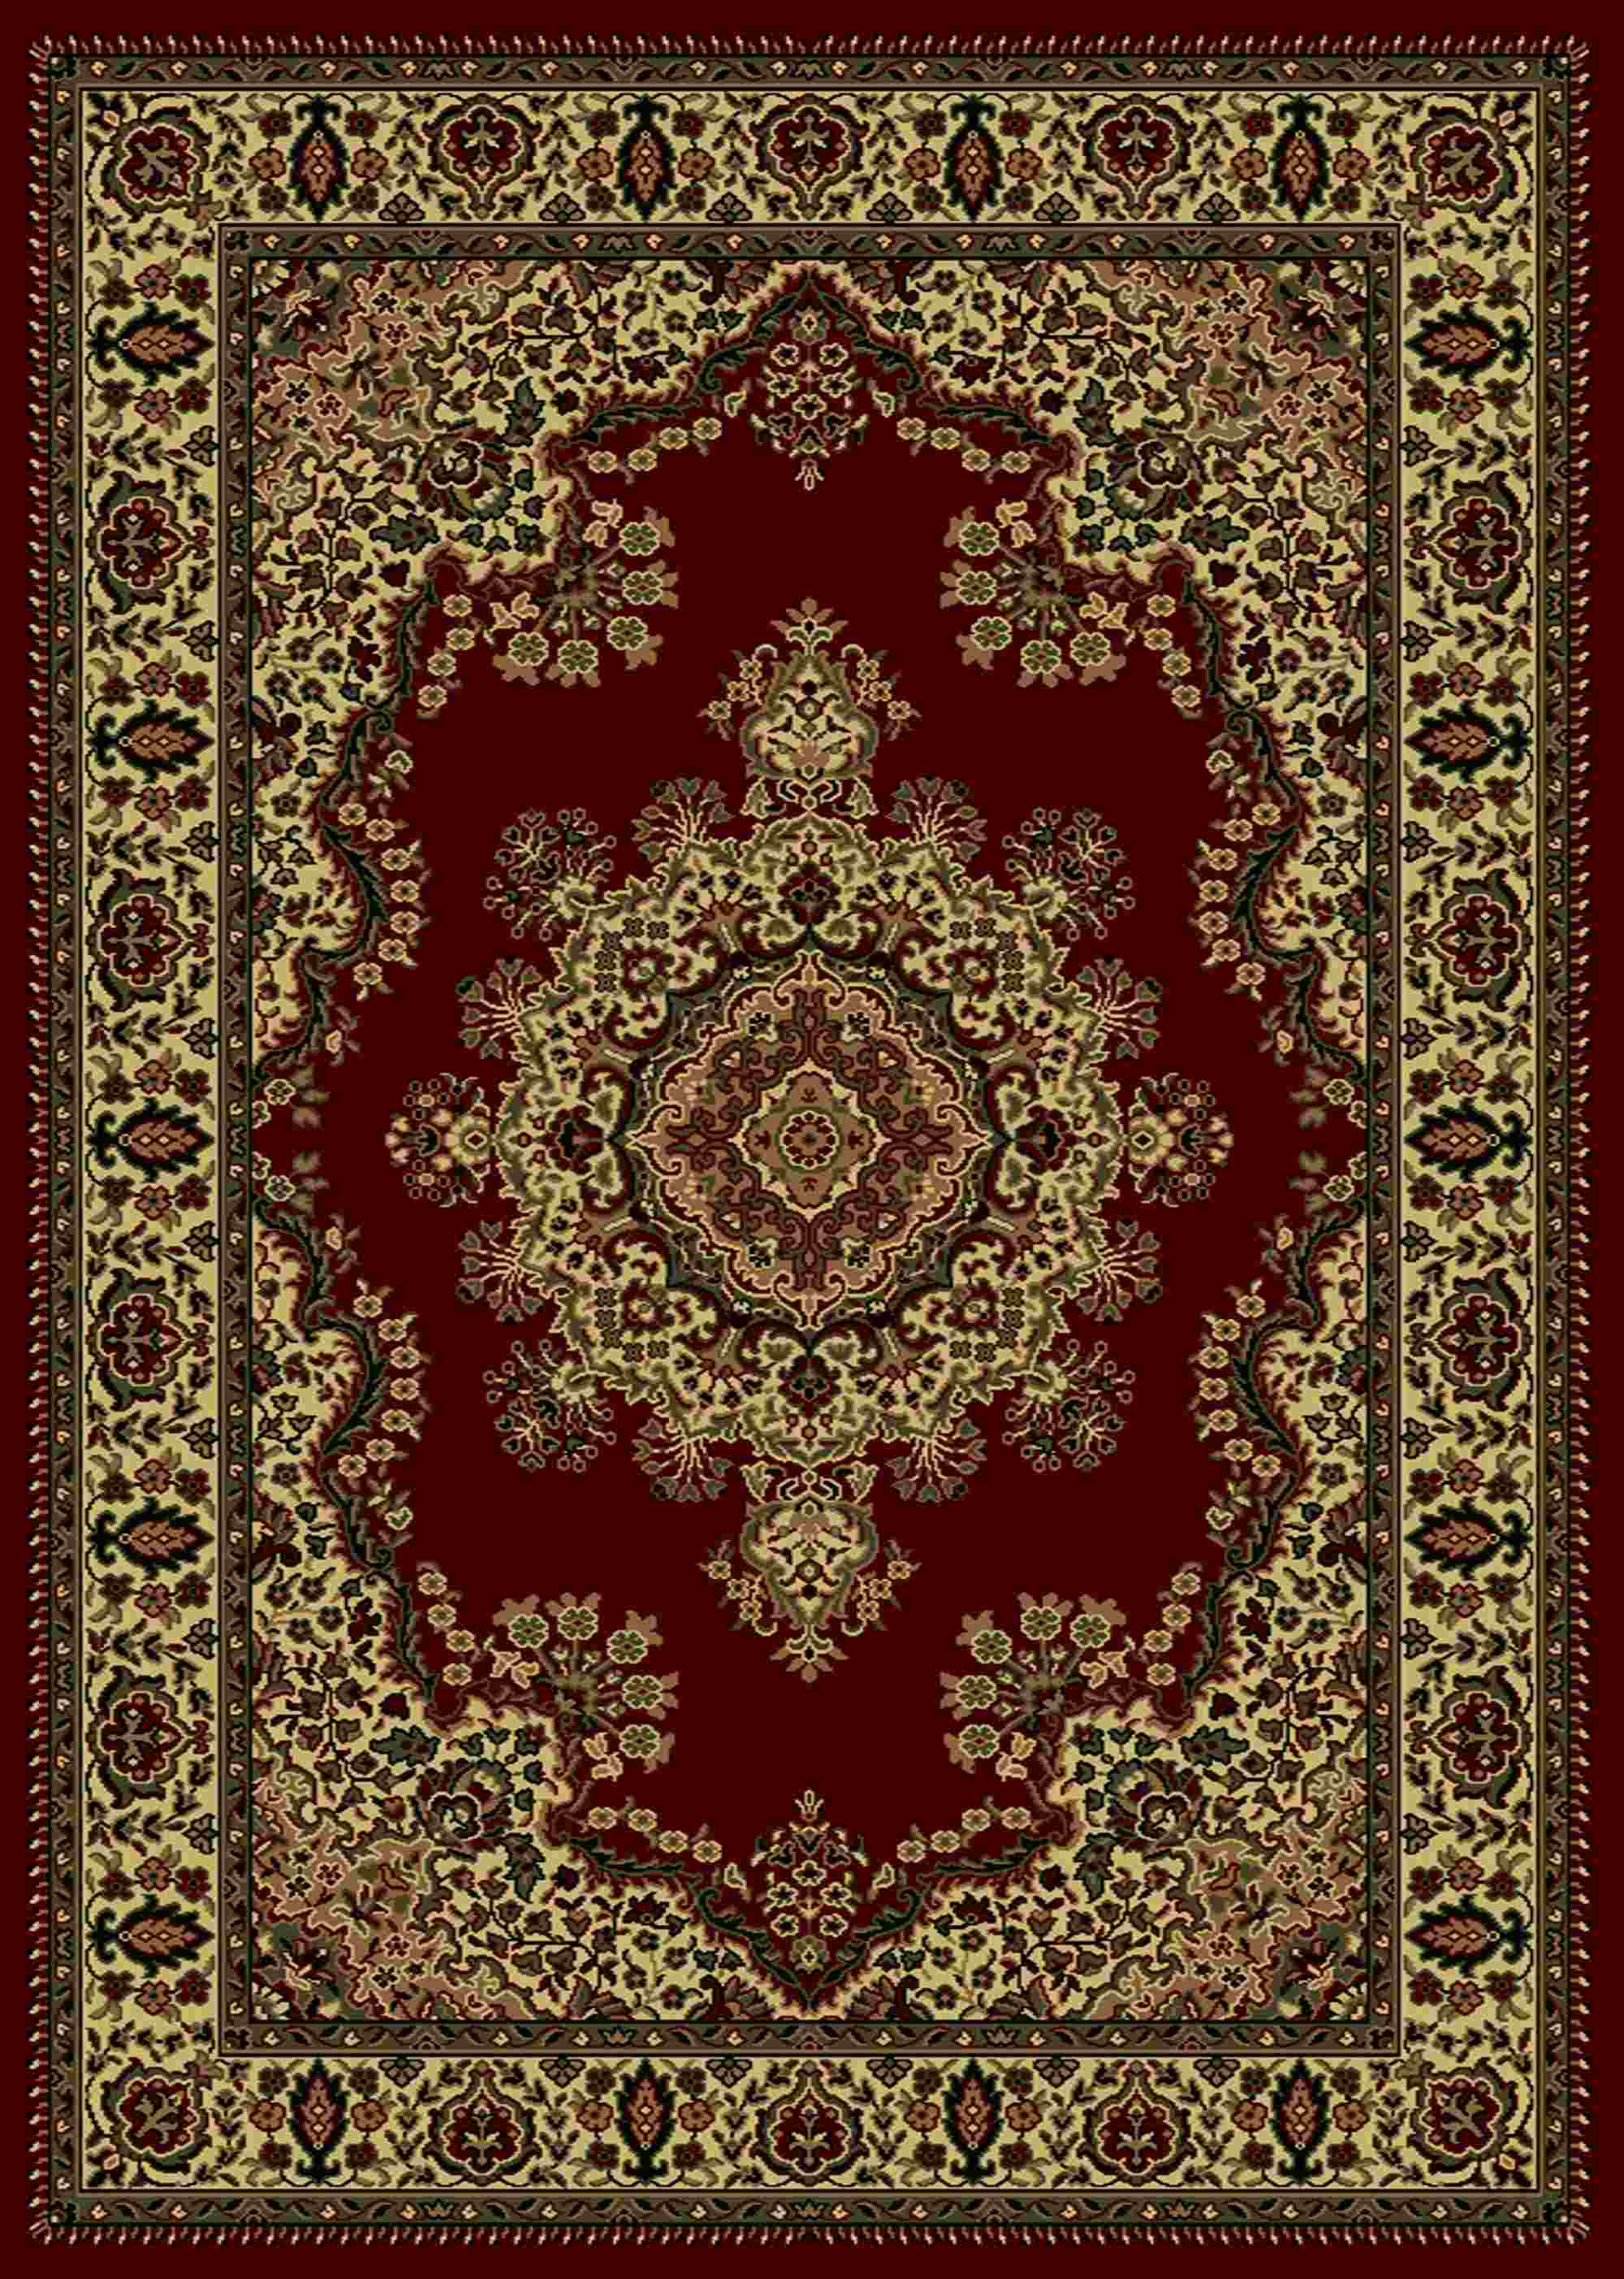 Radici Usa Castello 1191 Burgundy Traditional Area Rug